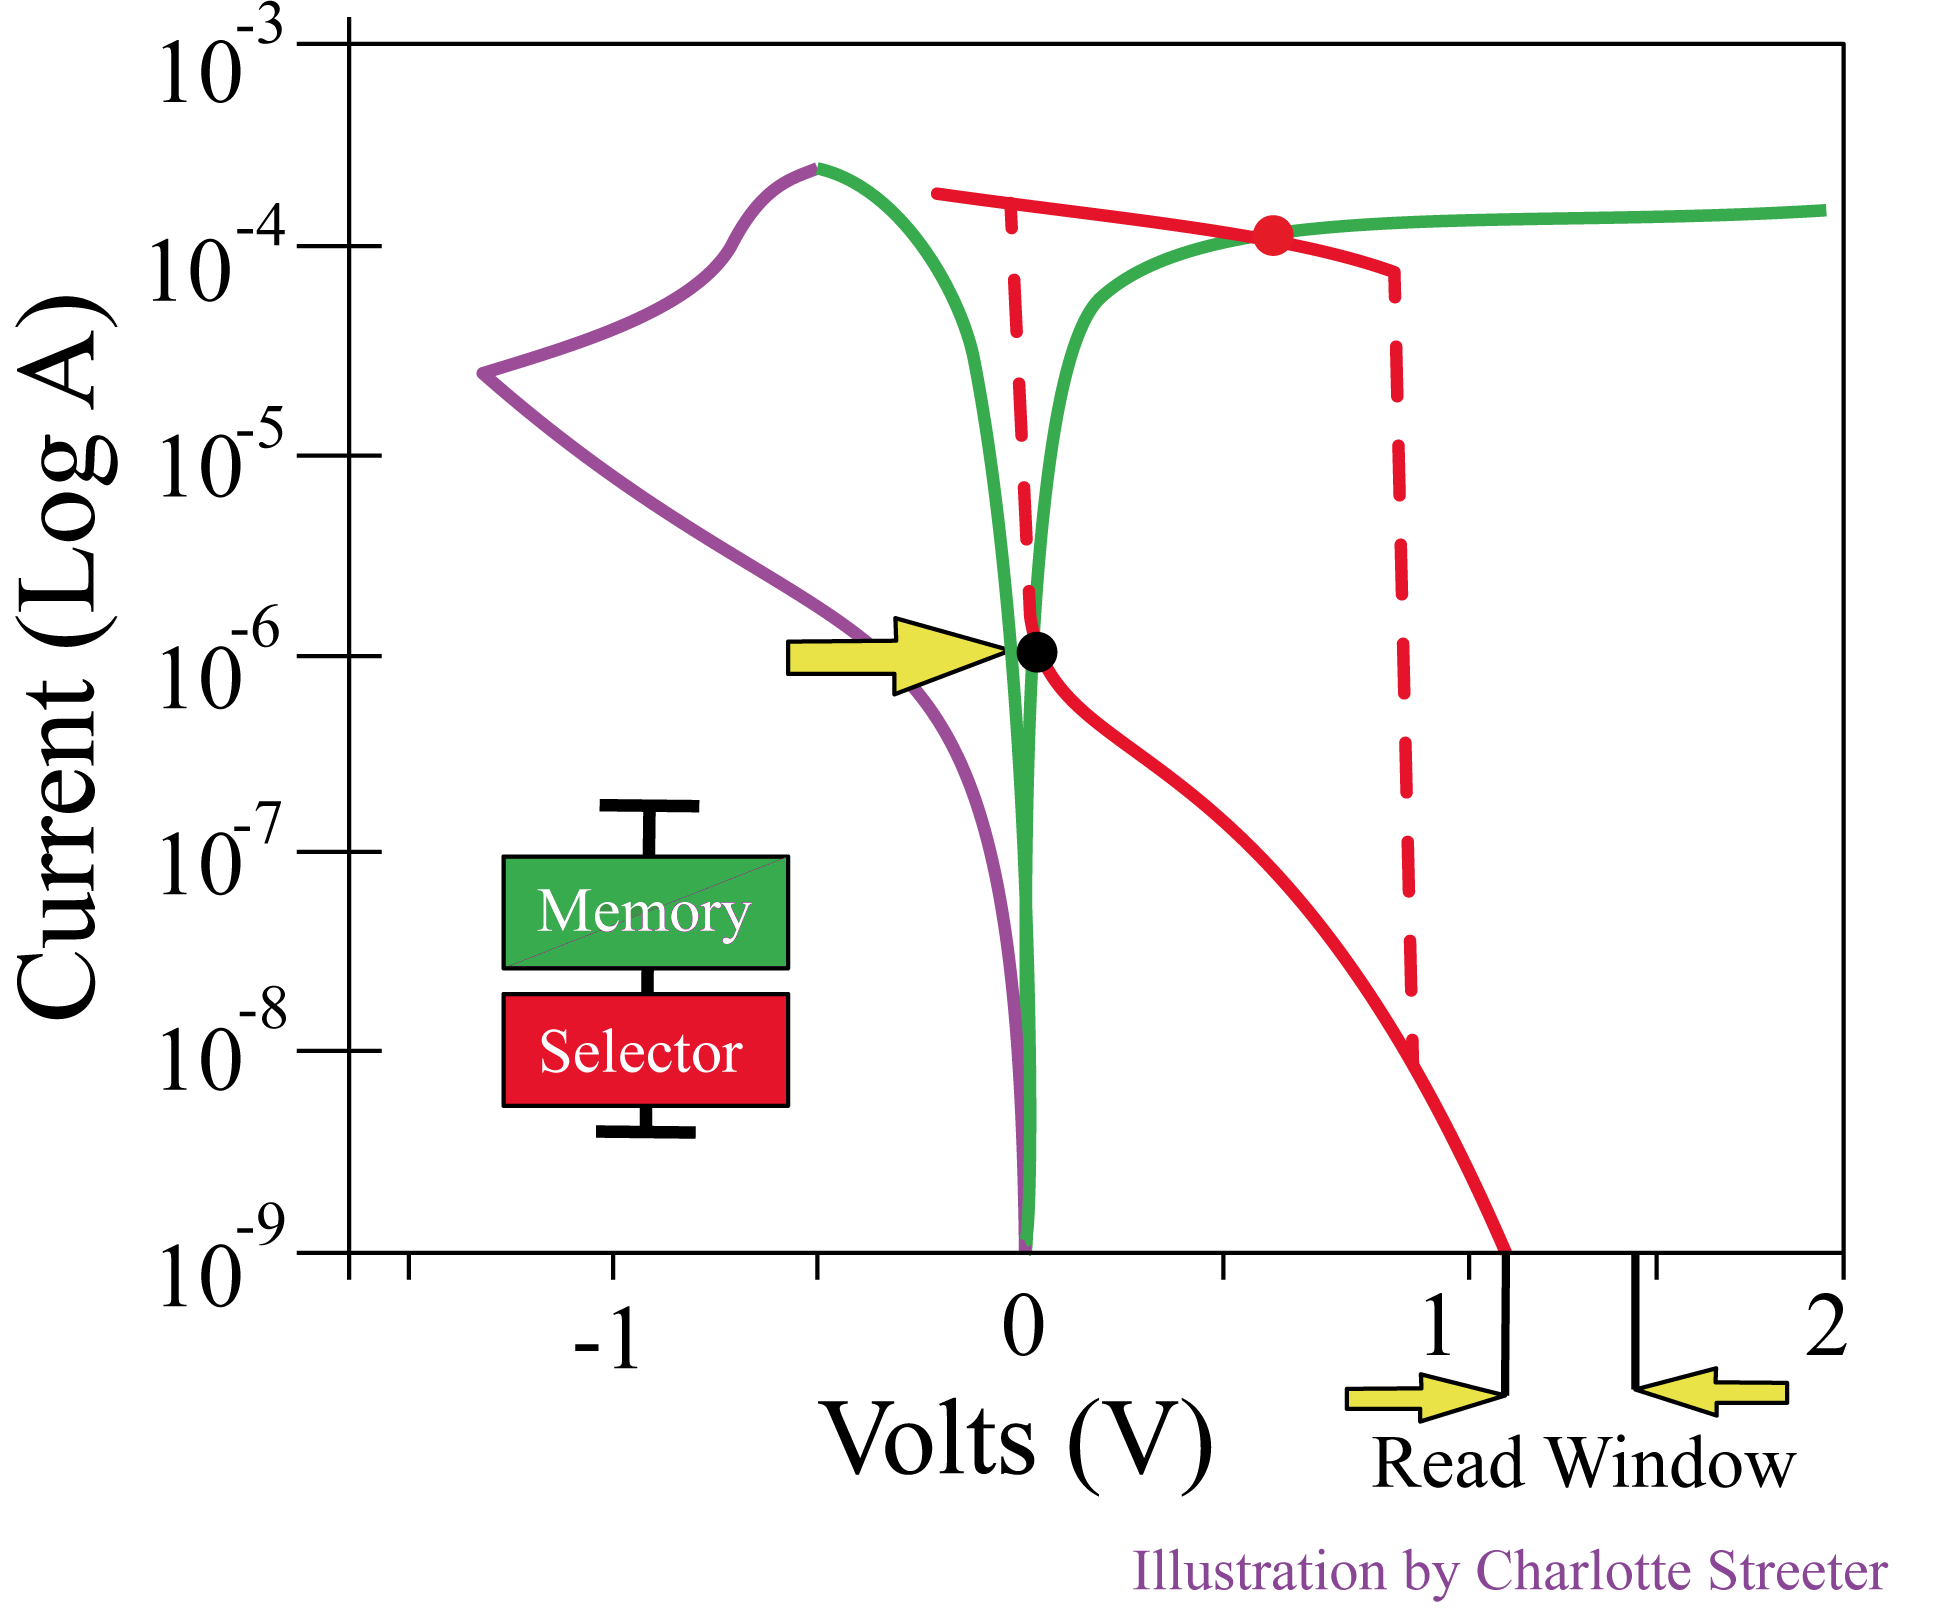 Load curves with memory element in low-resistance state I-V curve overlaid with reversed selector I-V curve